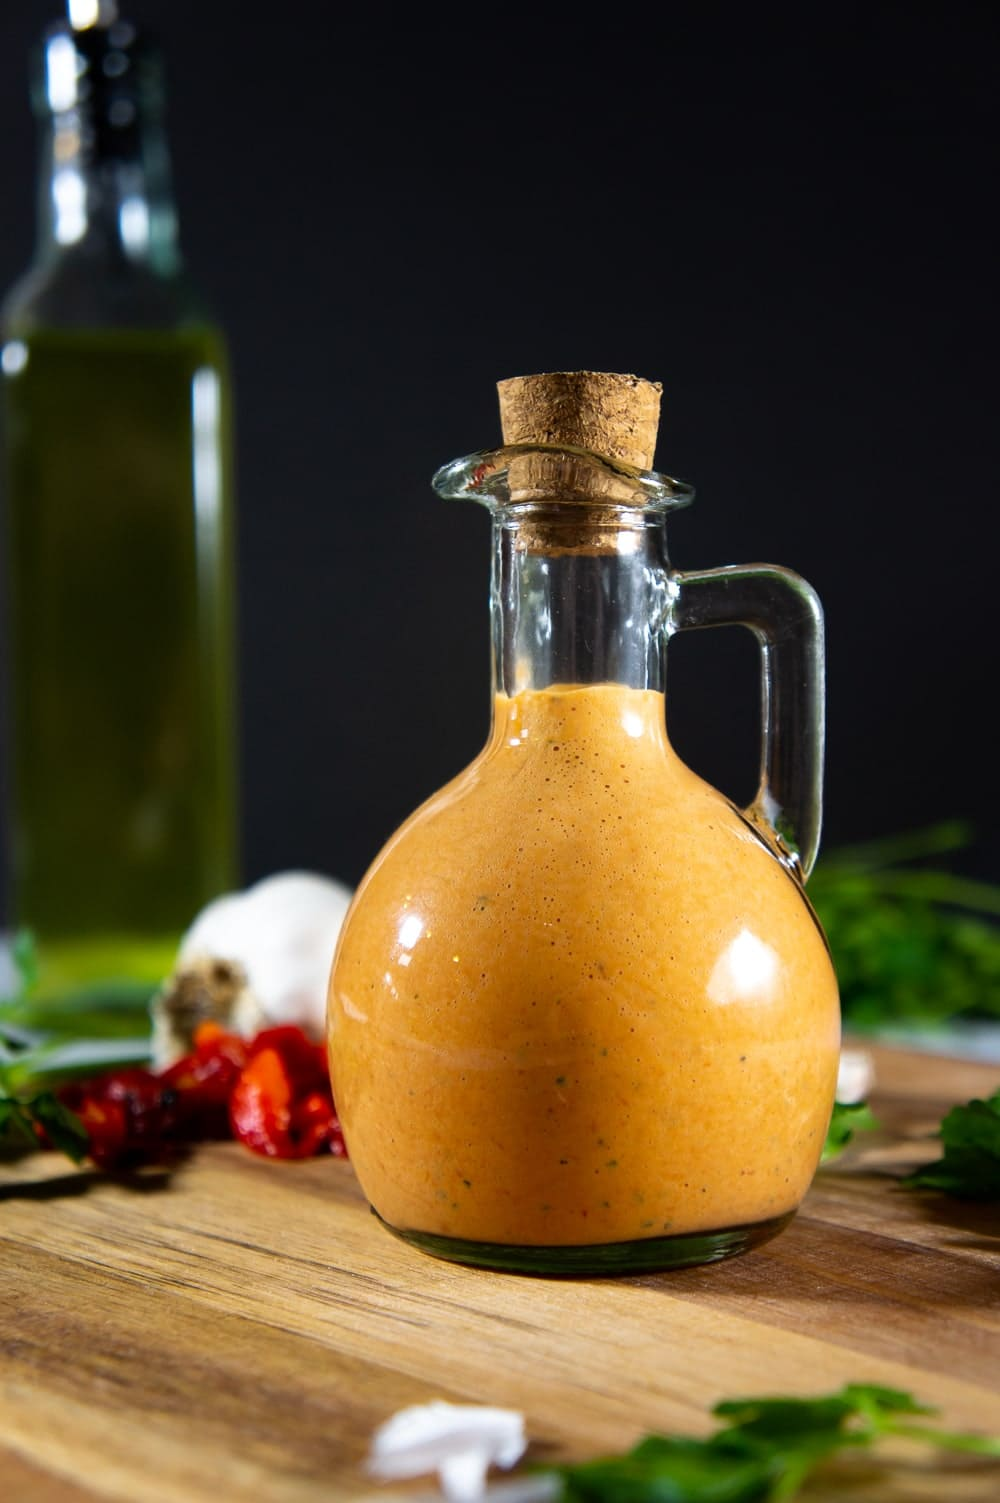 A jar of red pepper aioli on a wooden cutting board with parsley leaves